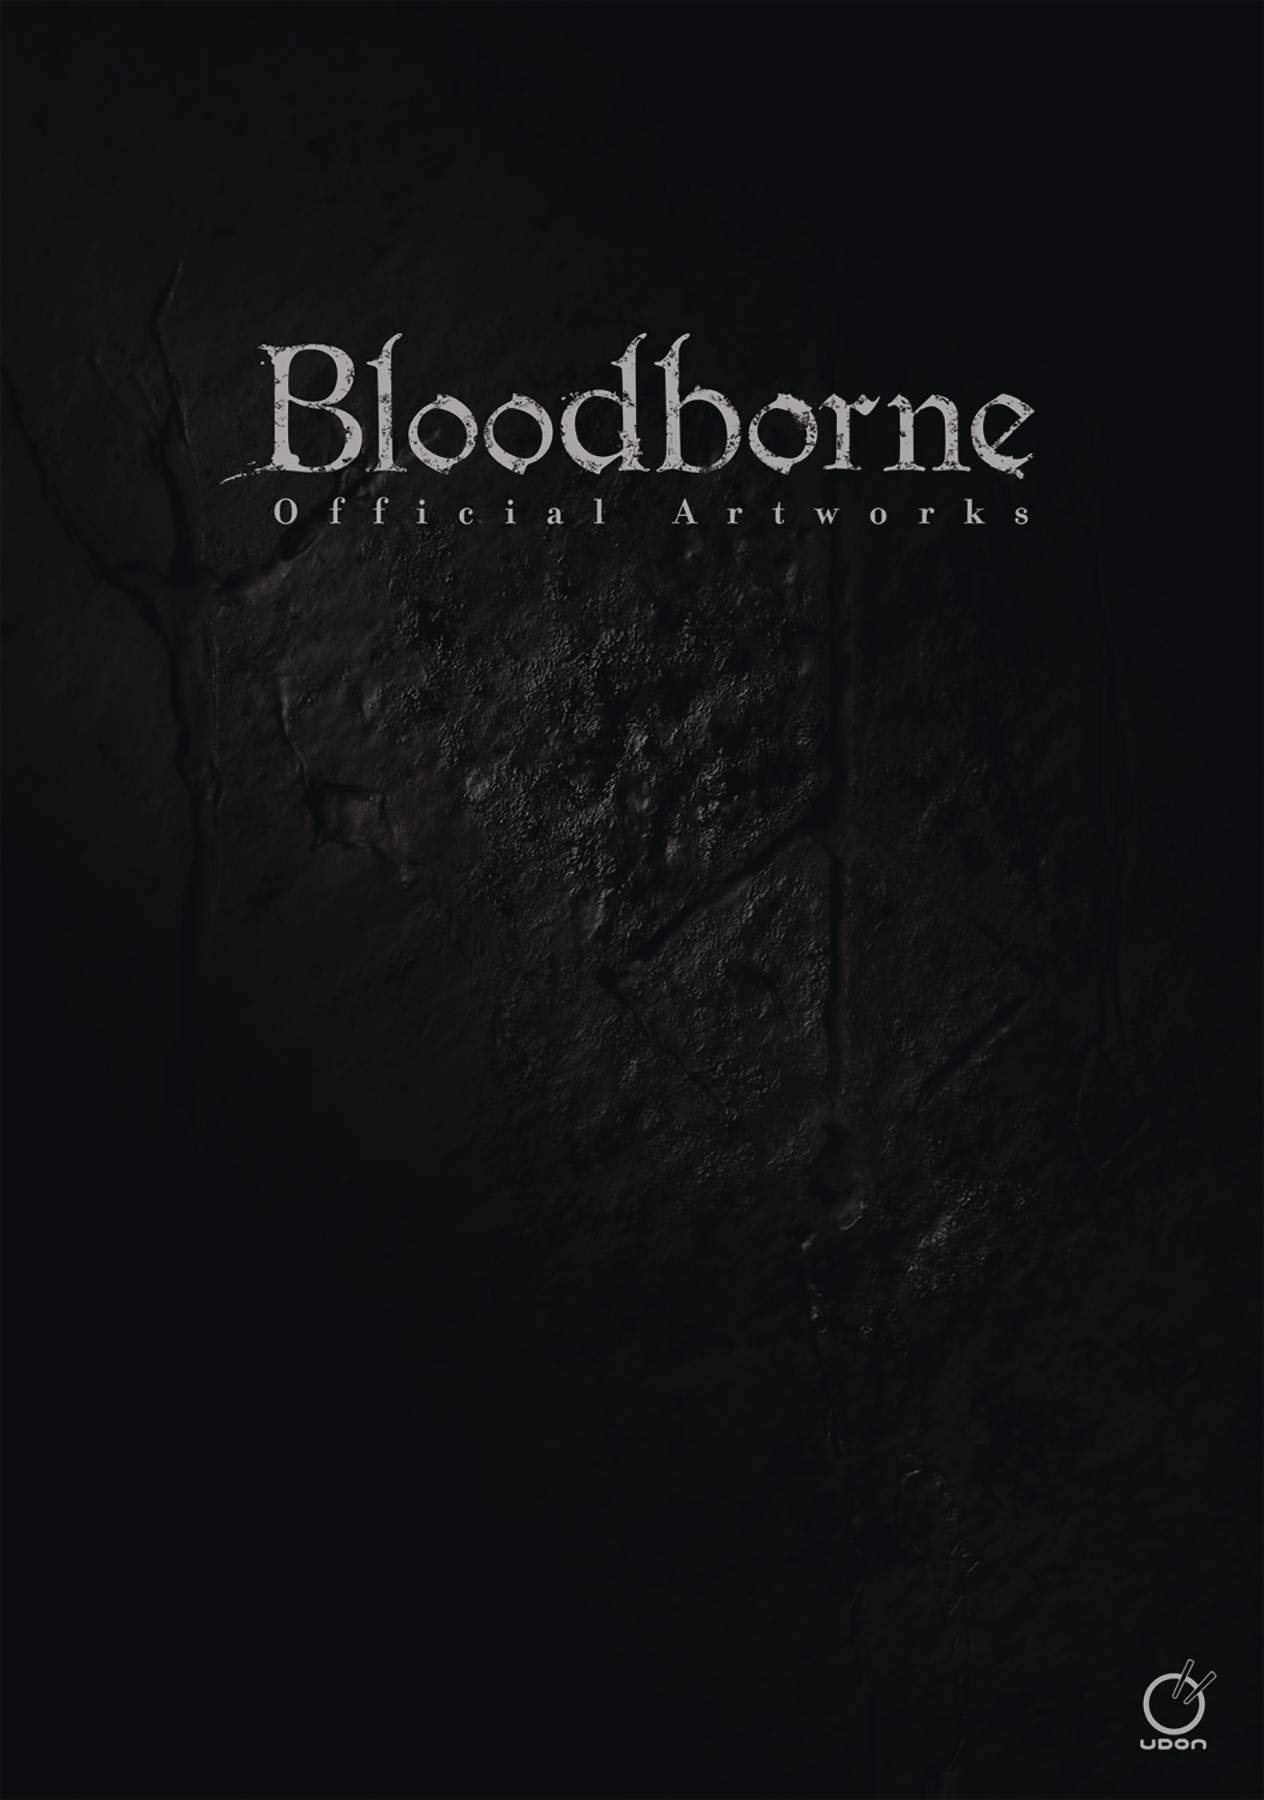 Bloodborne Official Artworks by UDON